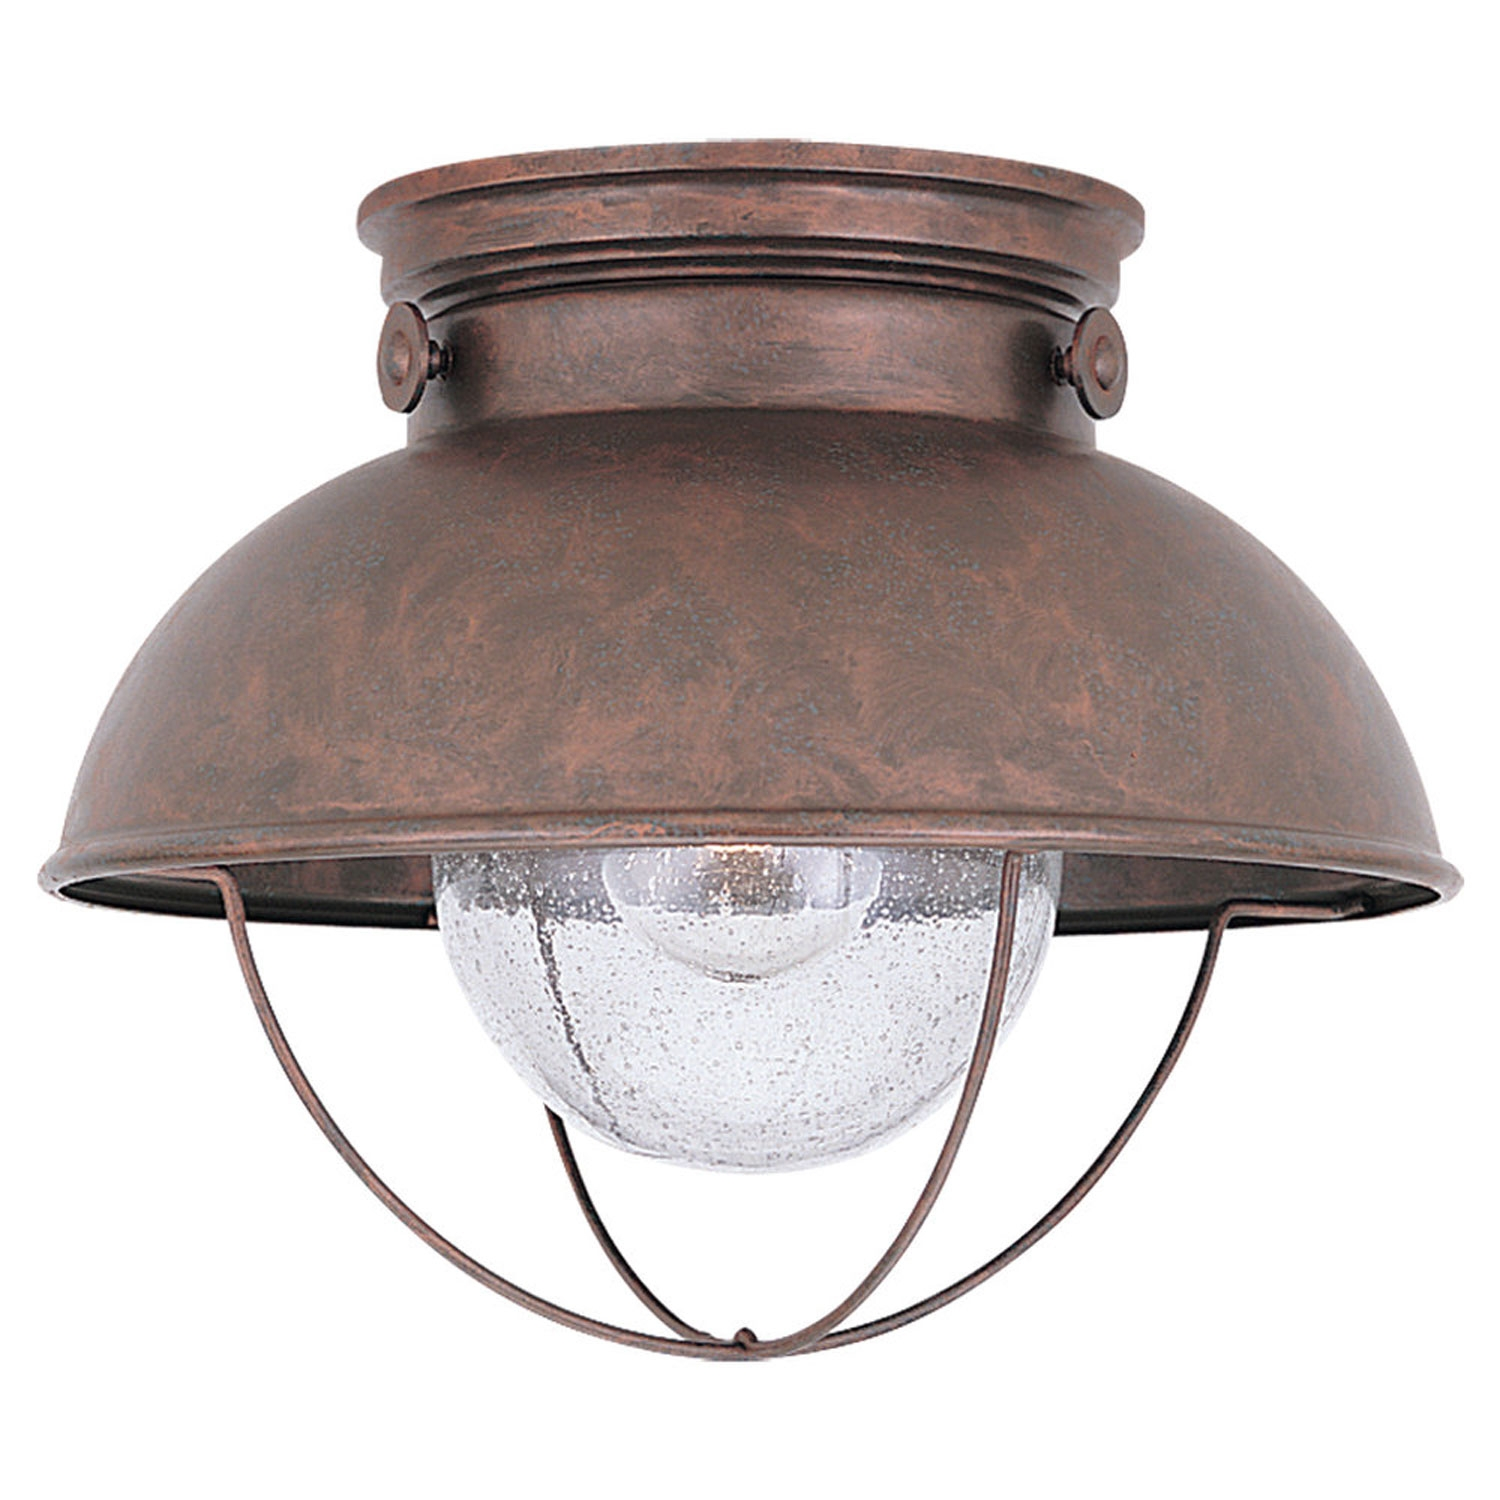 Outdoor Porch Light Ceiling Mount